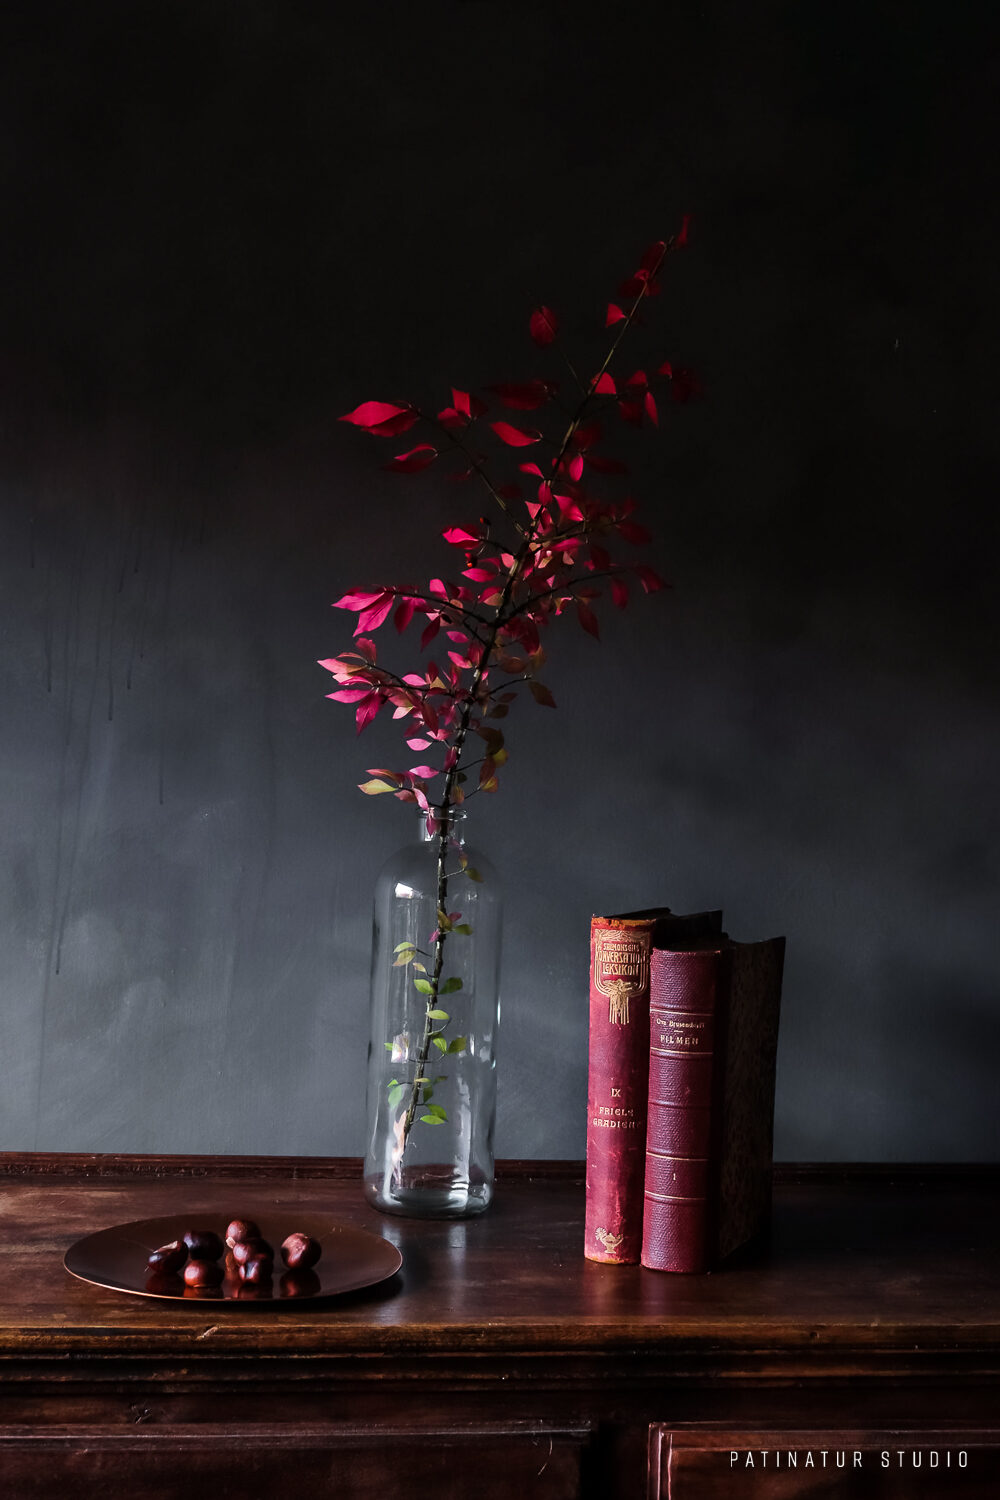 Photo Art | Dark and moody still life with red vintage books, red foliage and chestnuts